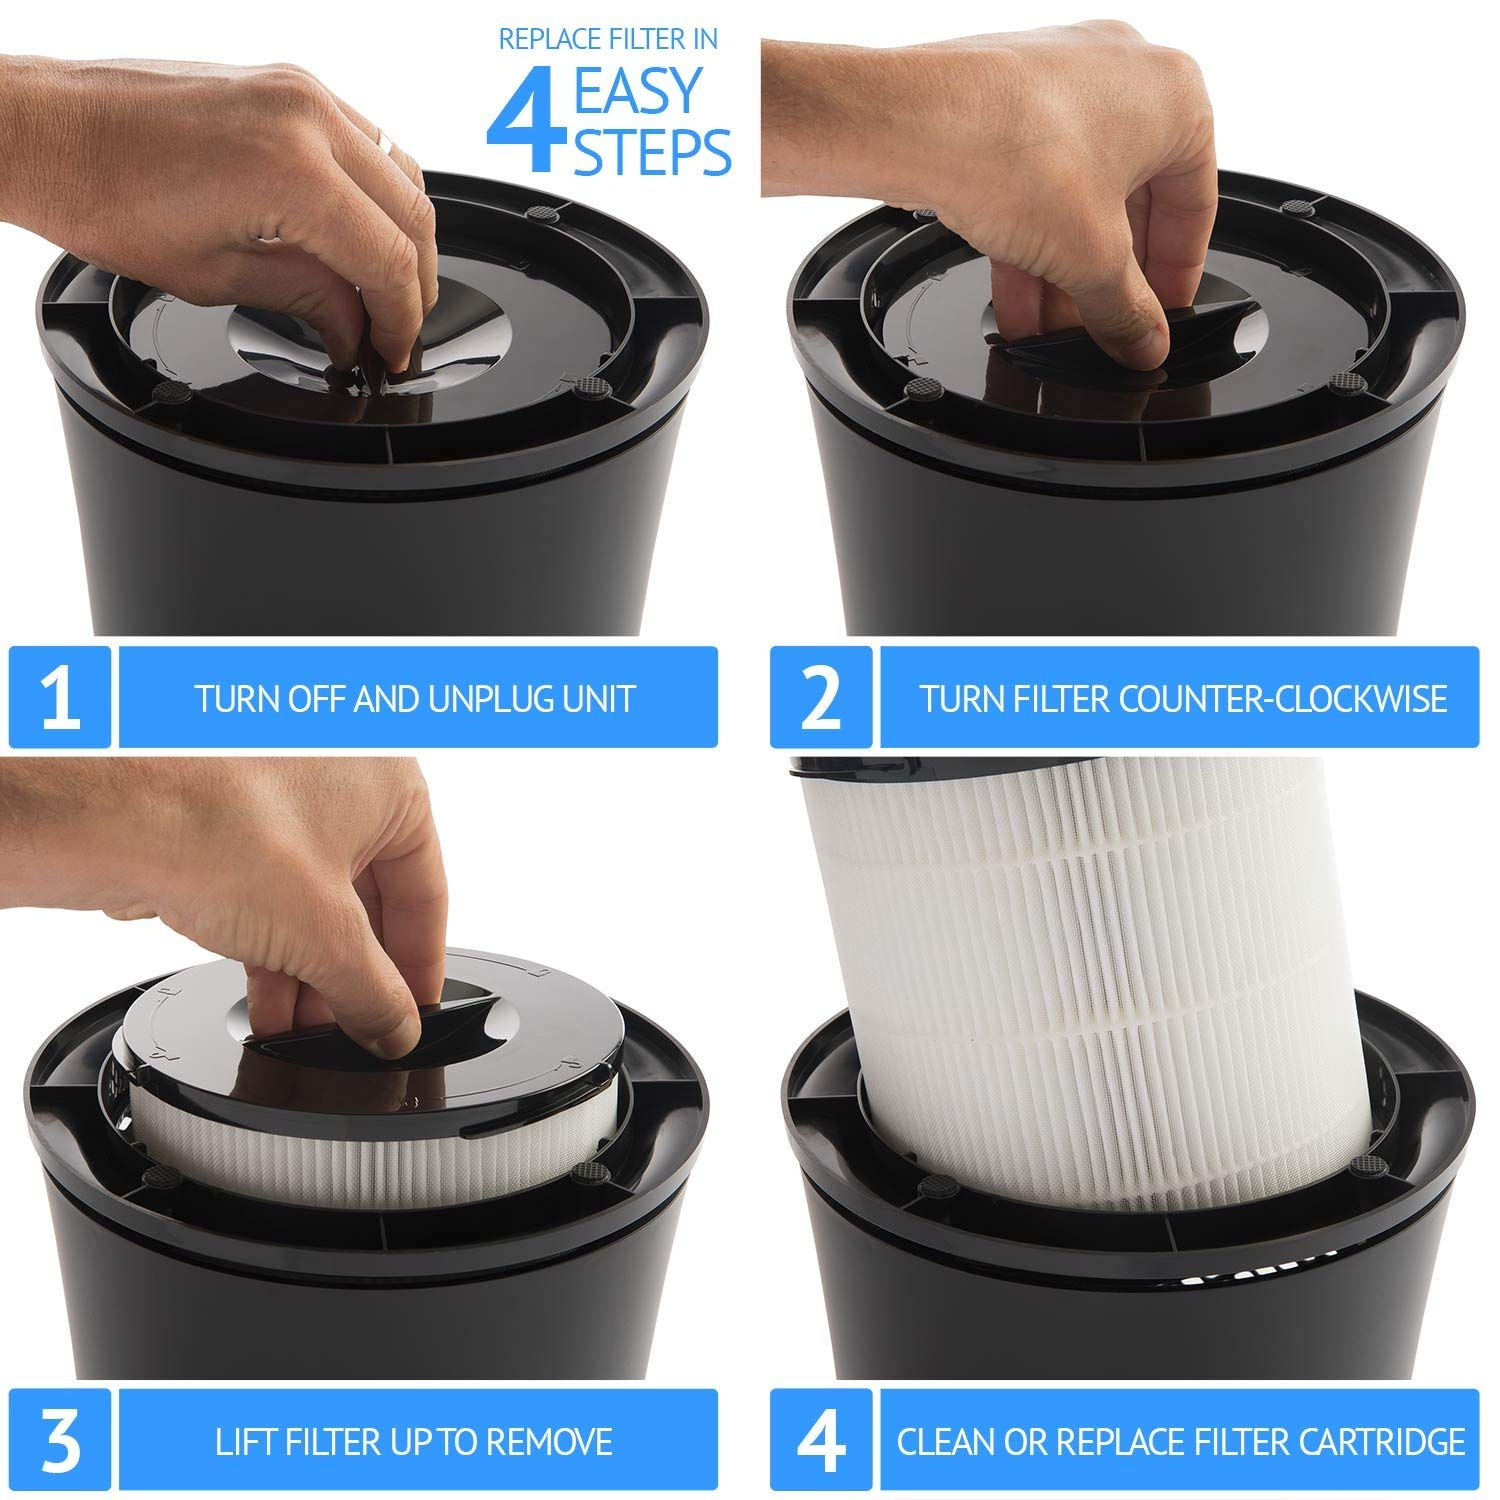 Best Air Purifier for Mold Spores and Mildew - #3 SilverOnyx Air Purifier - Filter Replacement Process